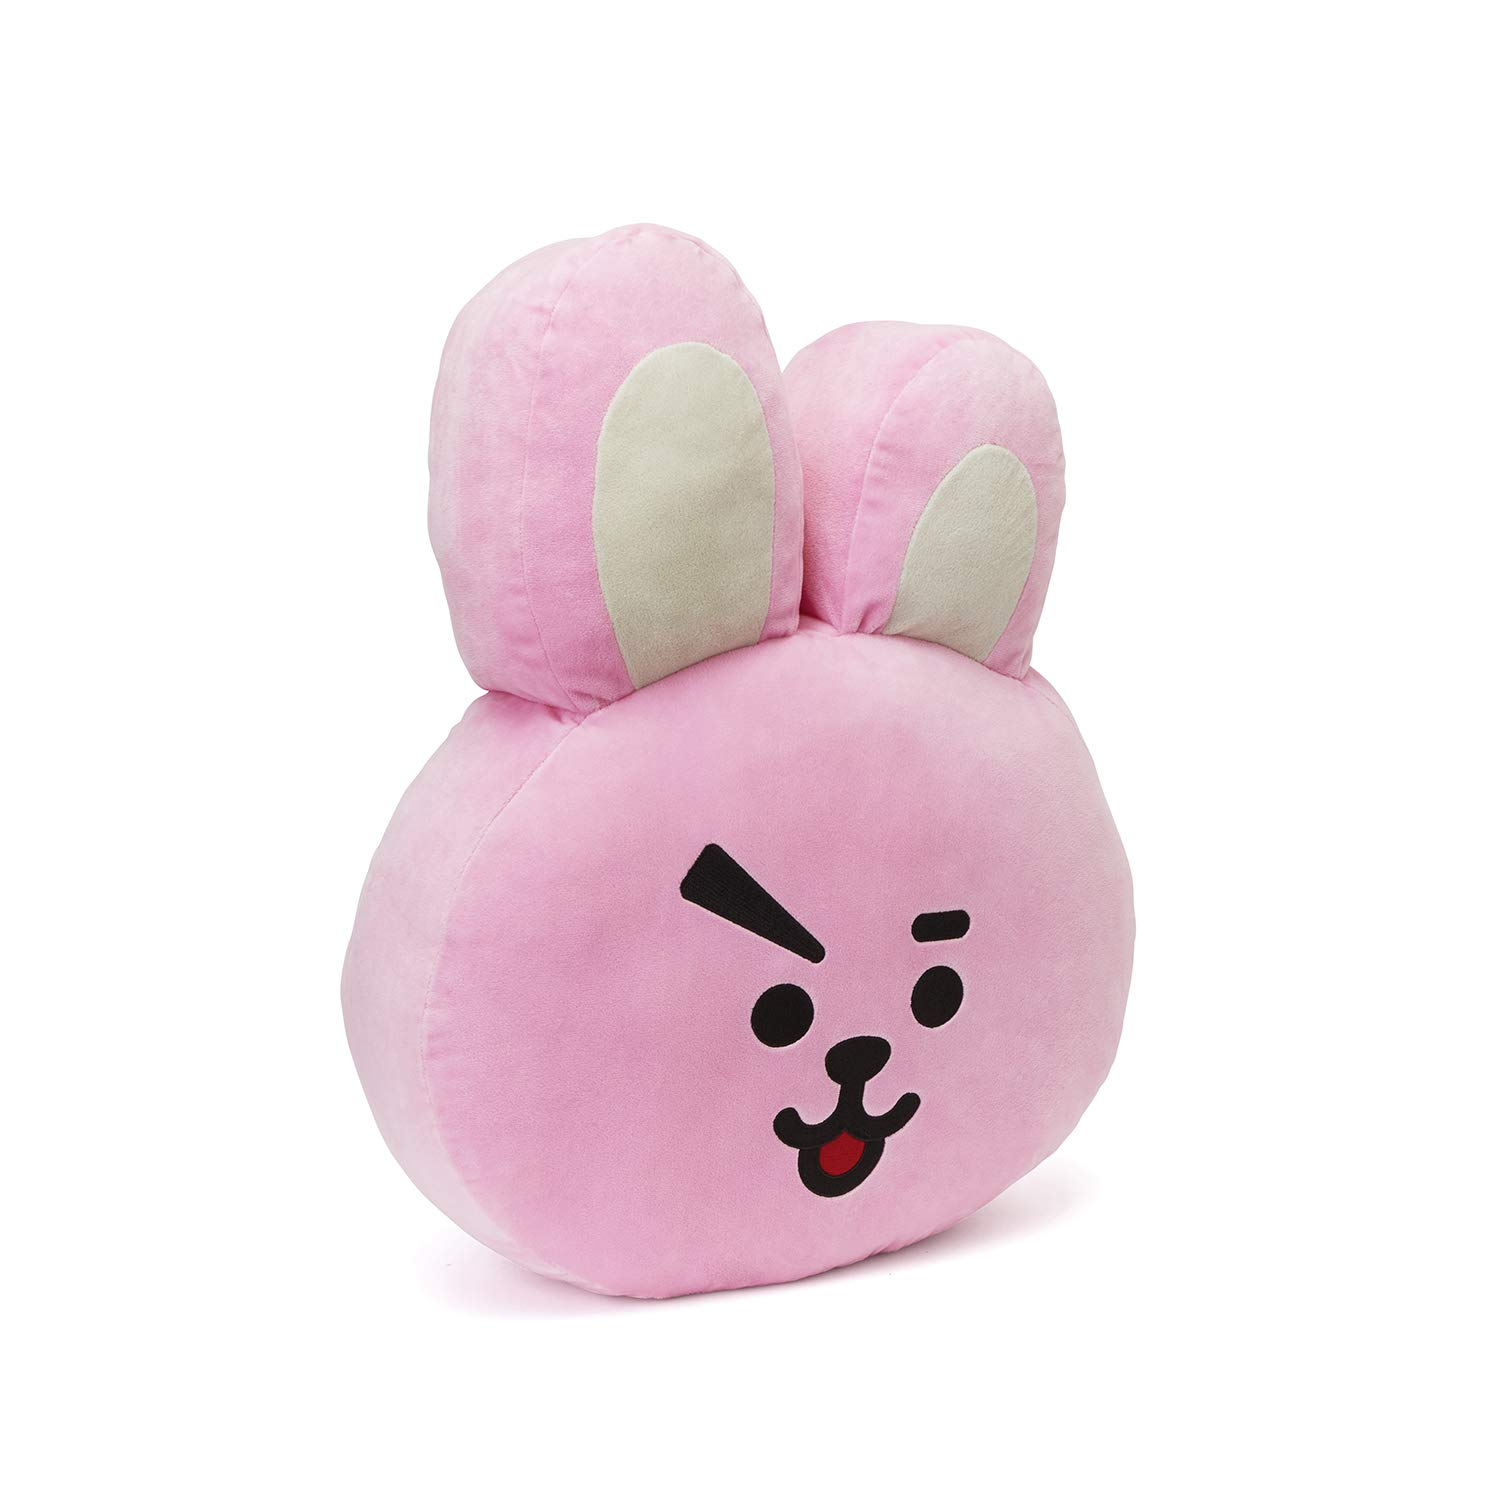 LINE FRIENDS BT21 Official Merchandise Cooky Smile Decorative Throw Pillows Cushion, 11 Inch by LINE FRIENDS (Image #5)